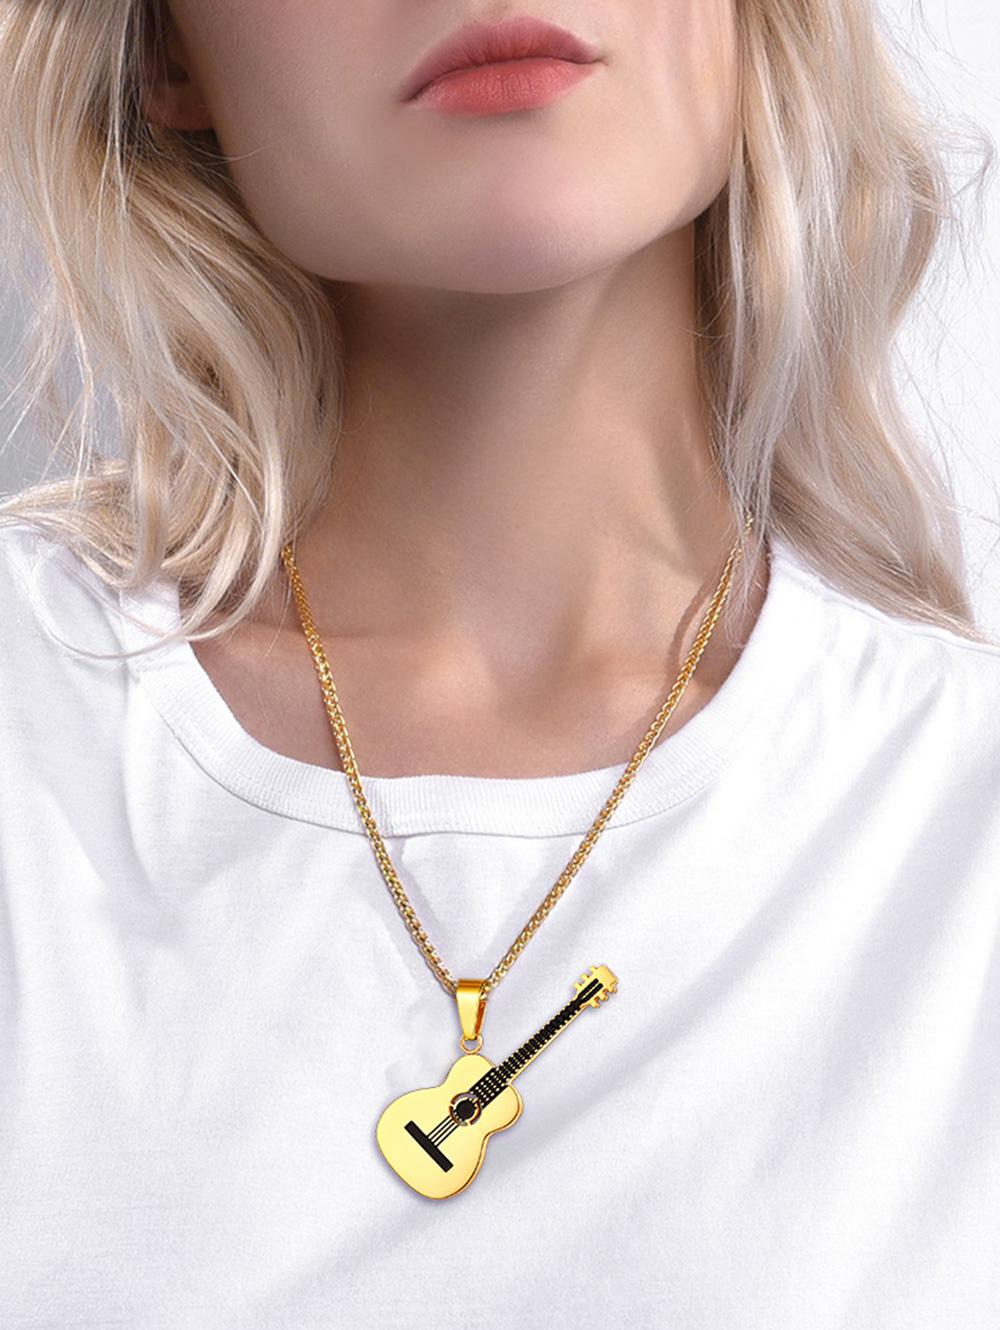 18K Gold Plated Guitar Necklace